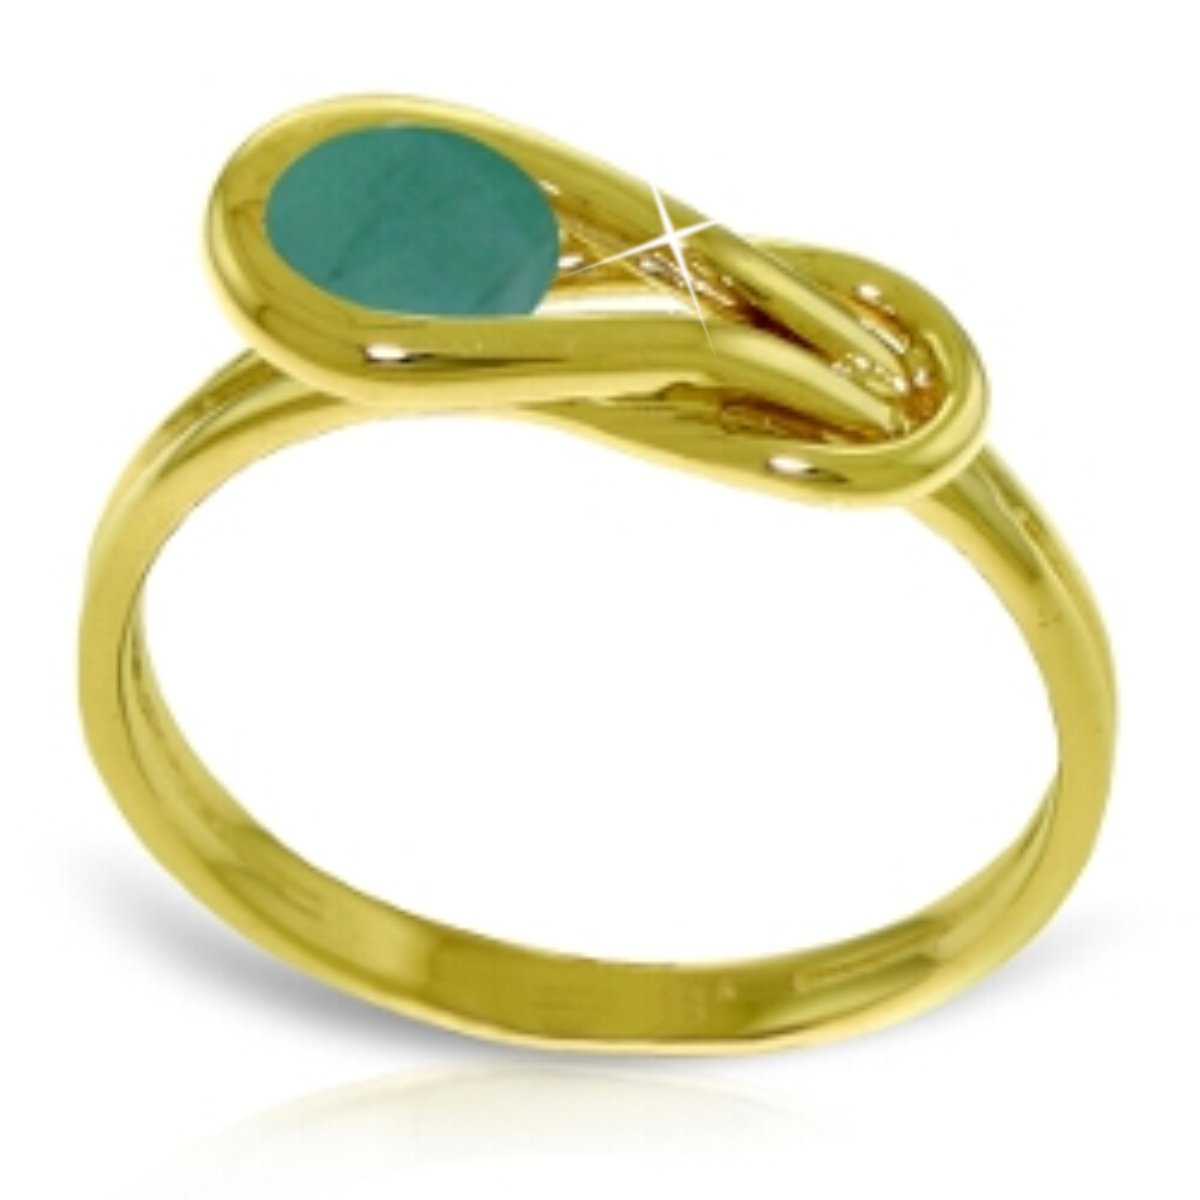 Love Knot Ring Natural Emerald Engagement Birthstone 14K Solid Yellow Gold 4217-Y